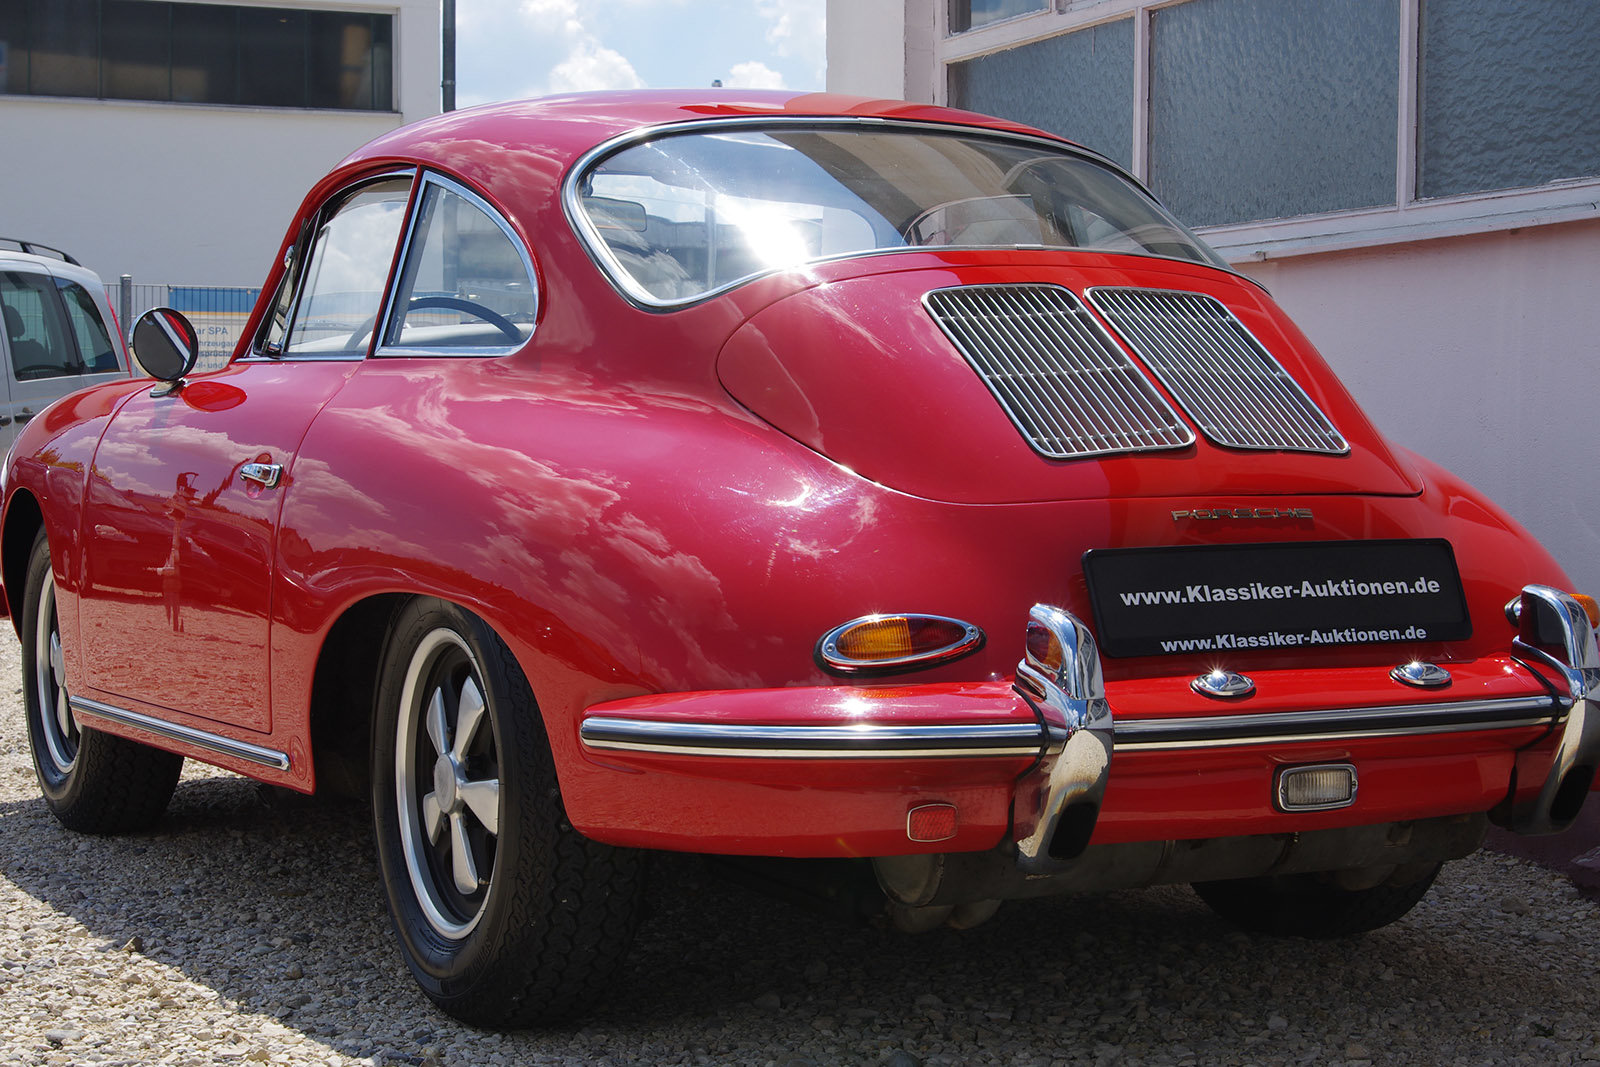 1964 Porsche 356 C Coupé *restored* MATCHING NUMBERS* For Sale (picture 3 of 6)